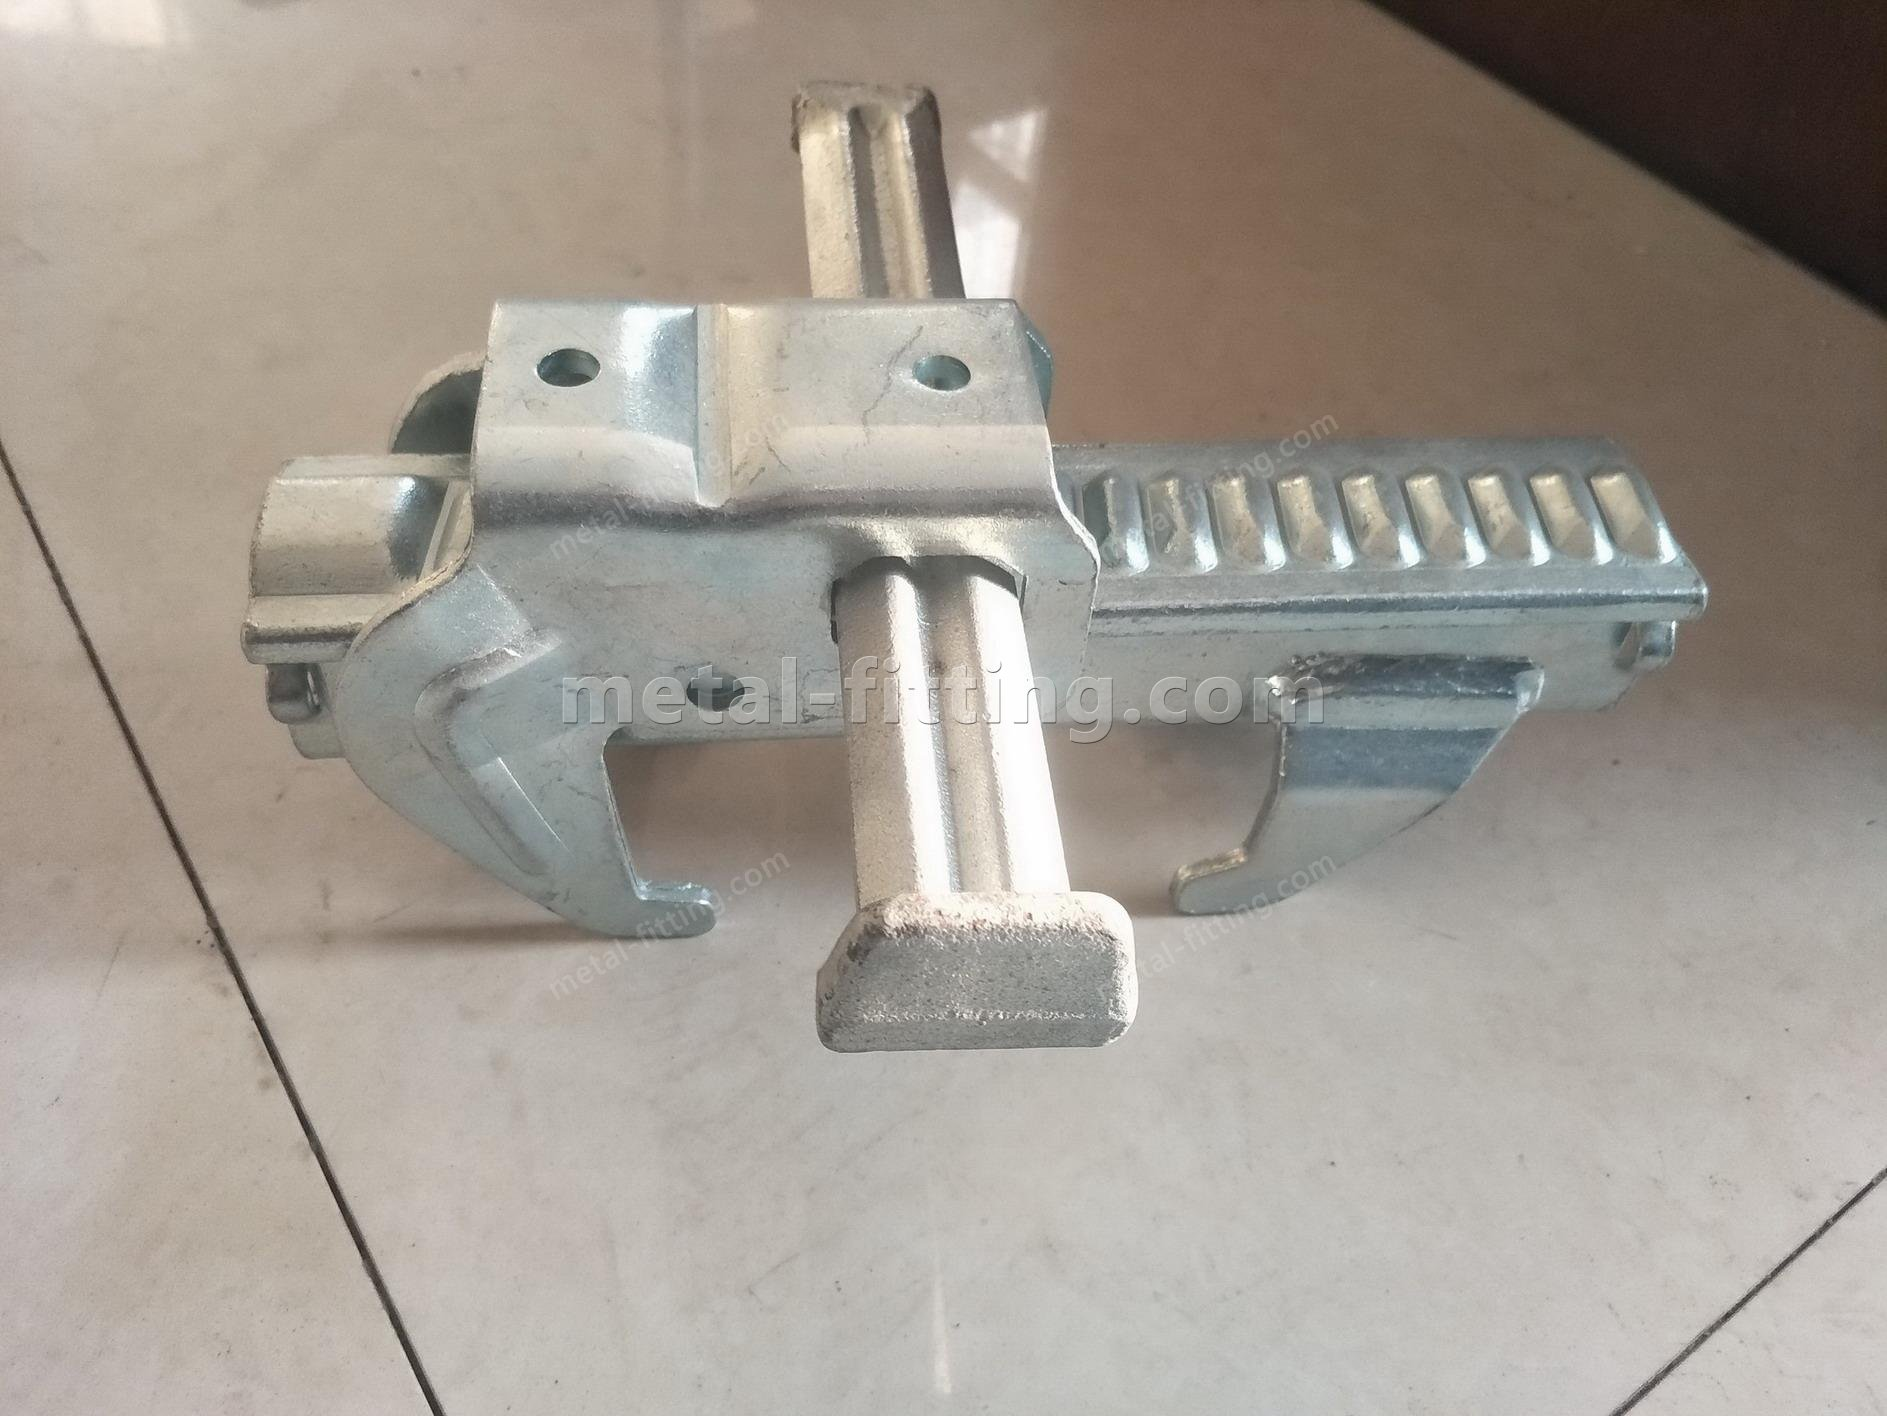 scaffolding fitting  system panel clamp-panel clamp (2)